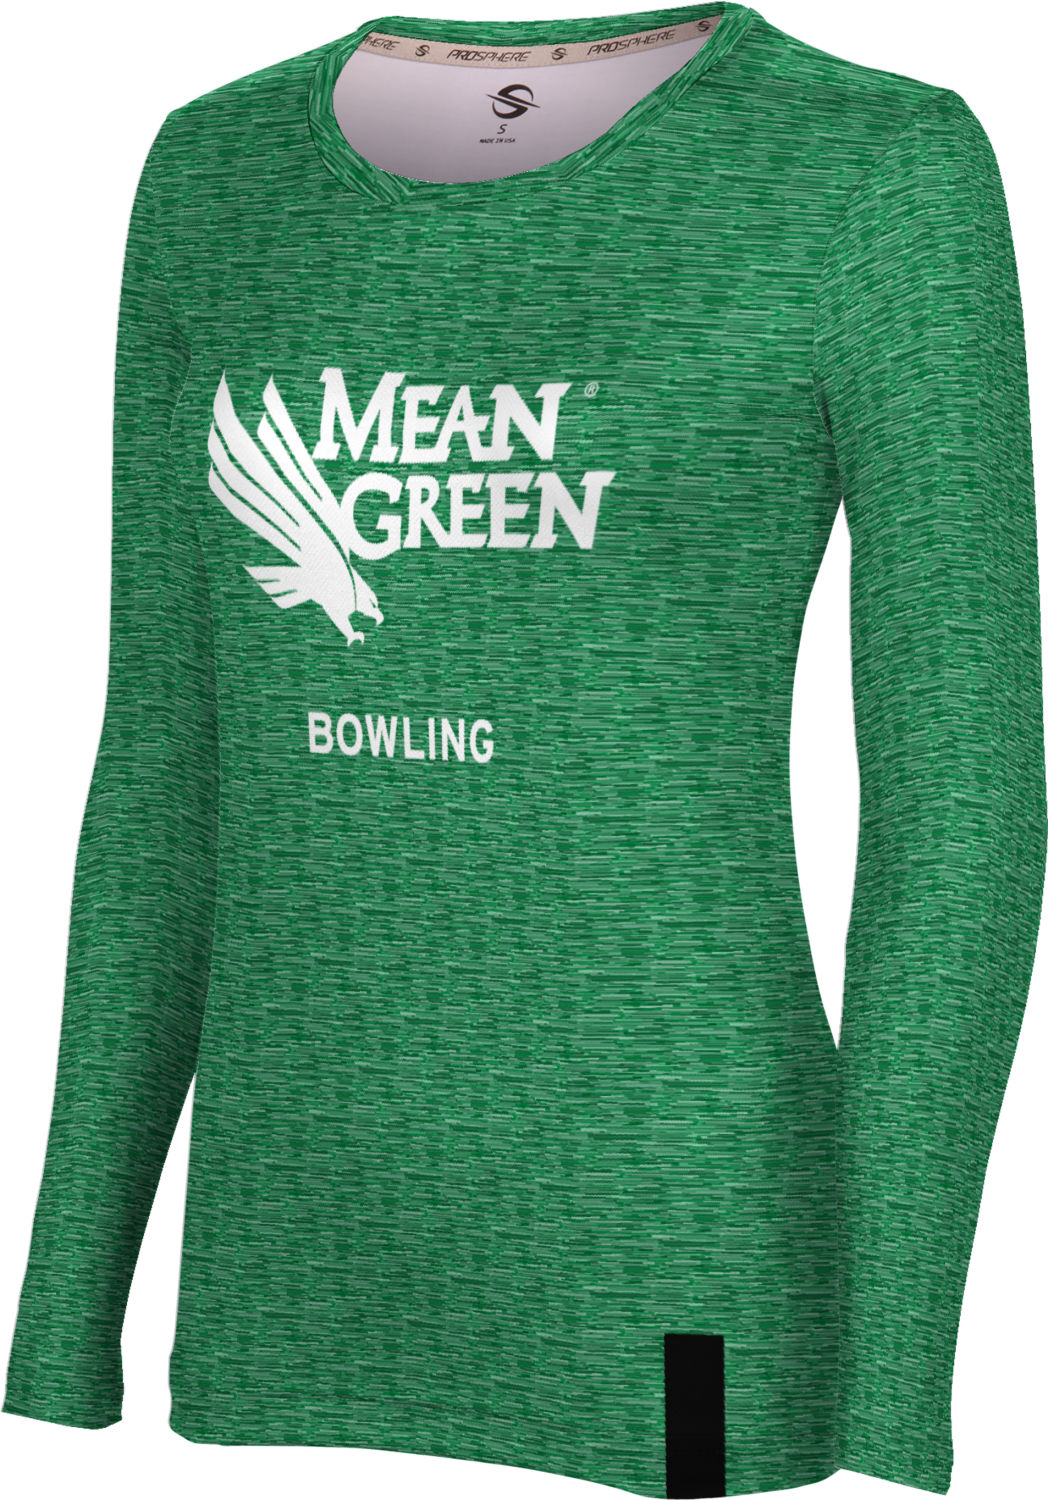 Women's ProSphere Sublimated Long Sleeve Tee - Bowling